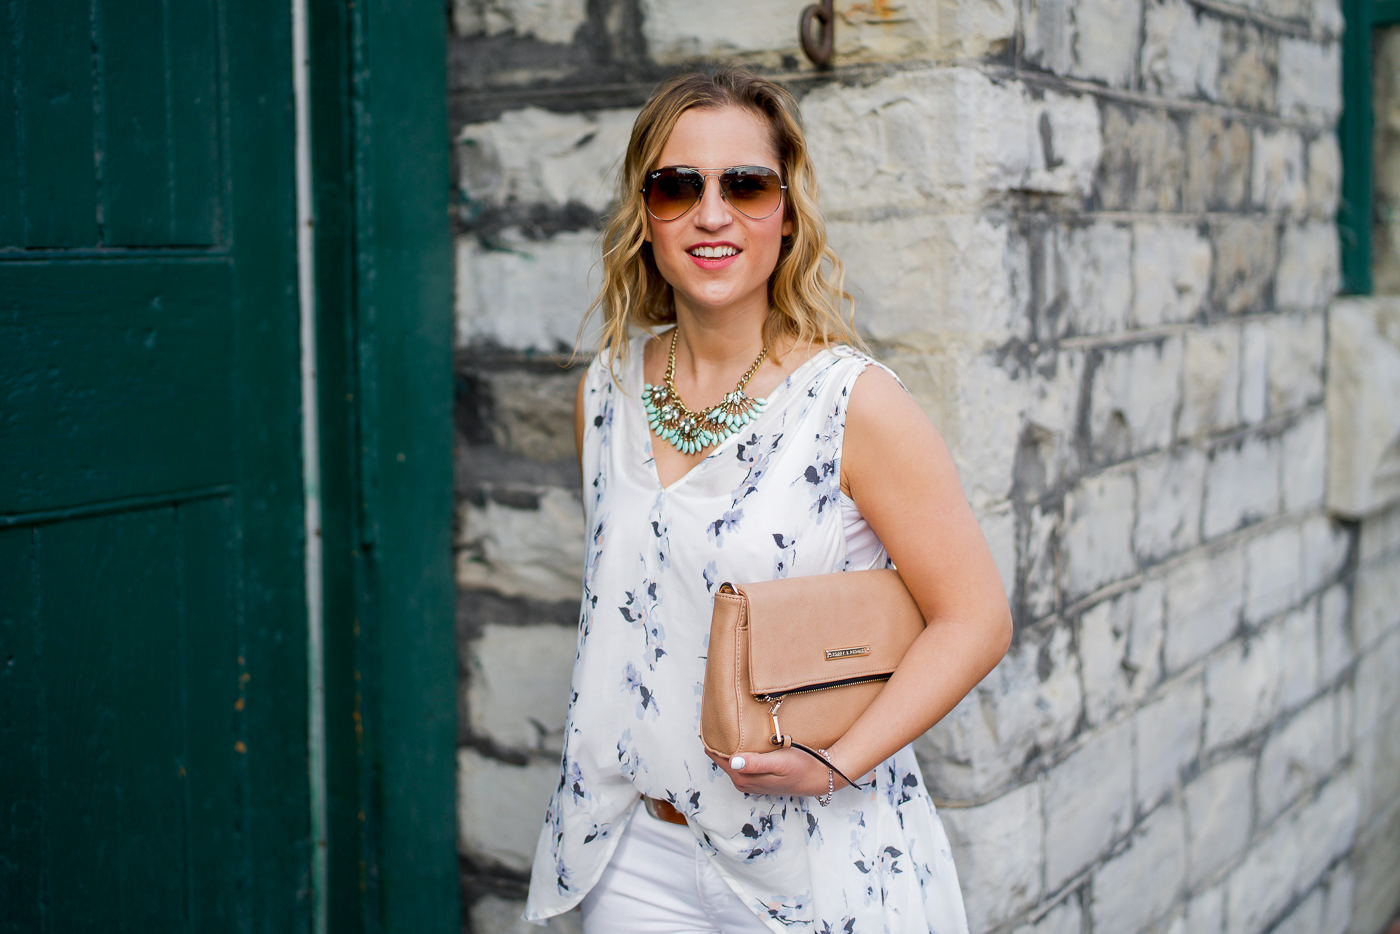 Toronto fashion blogger is wearing a white floral top from Gentle Fawn